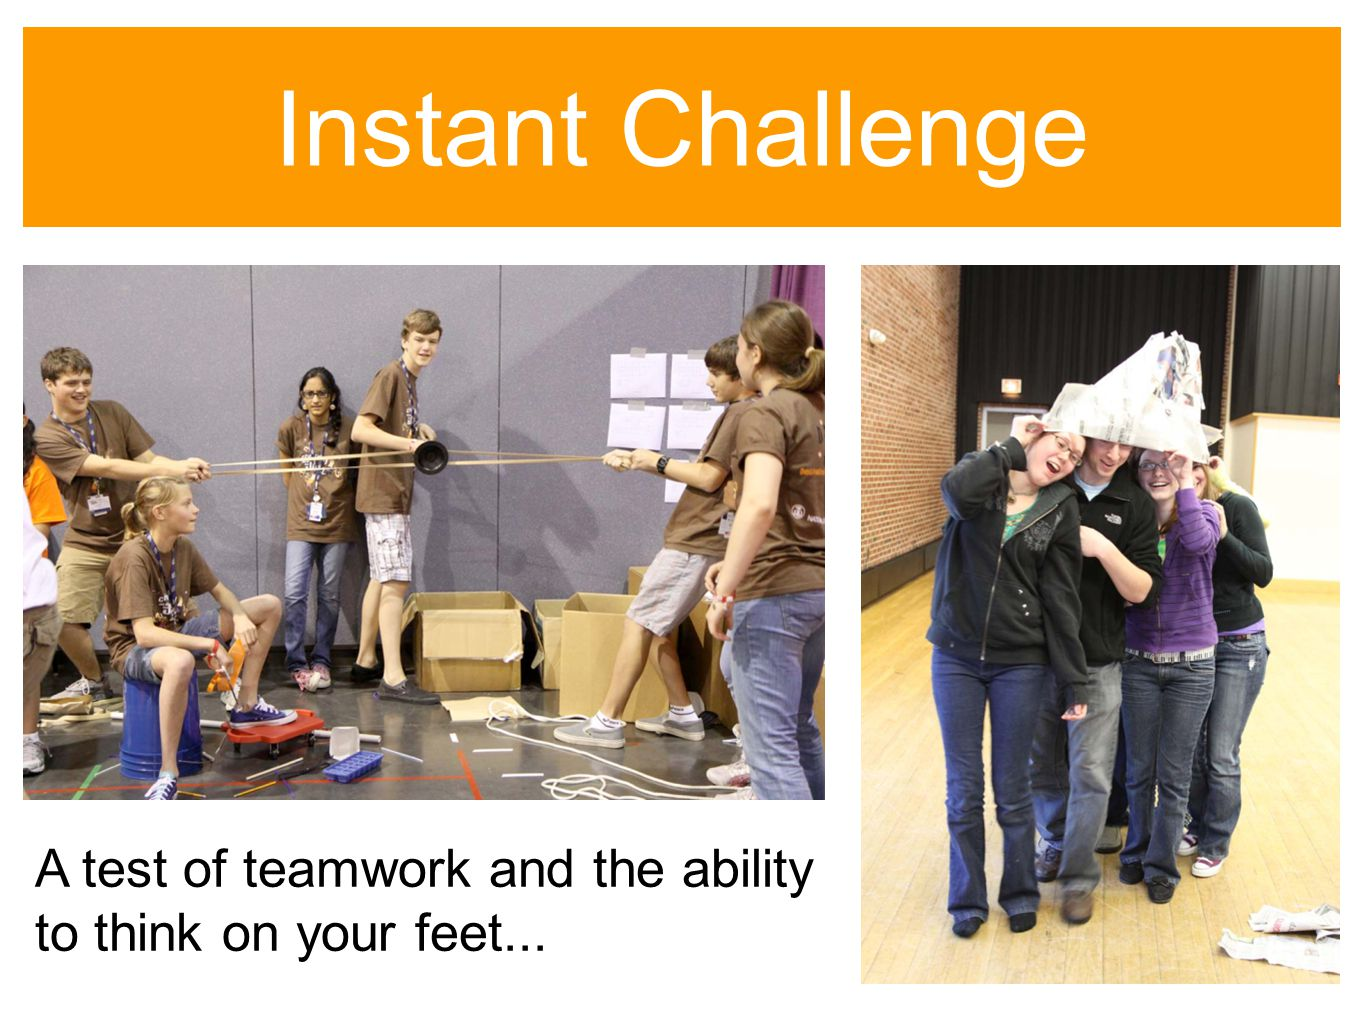 Instant Challenge A test of teamwork and the ability to think on your feet...